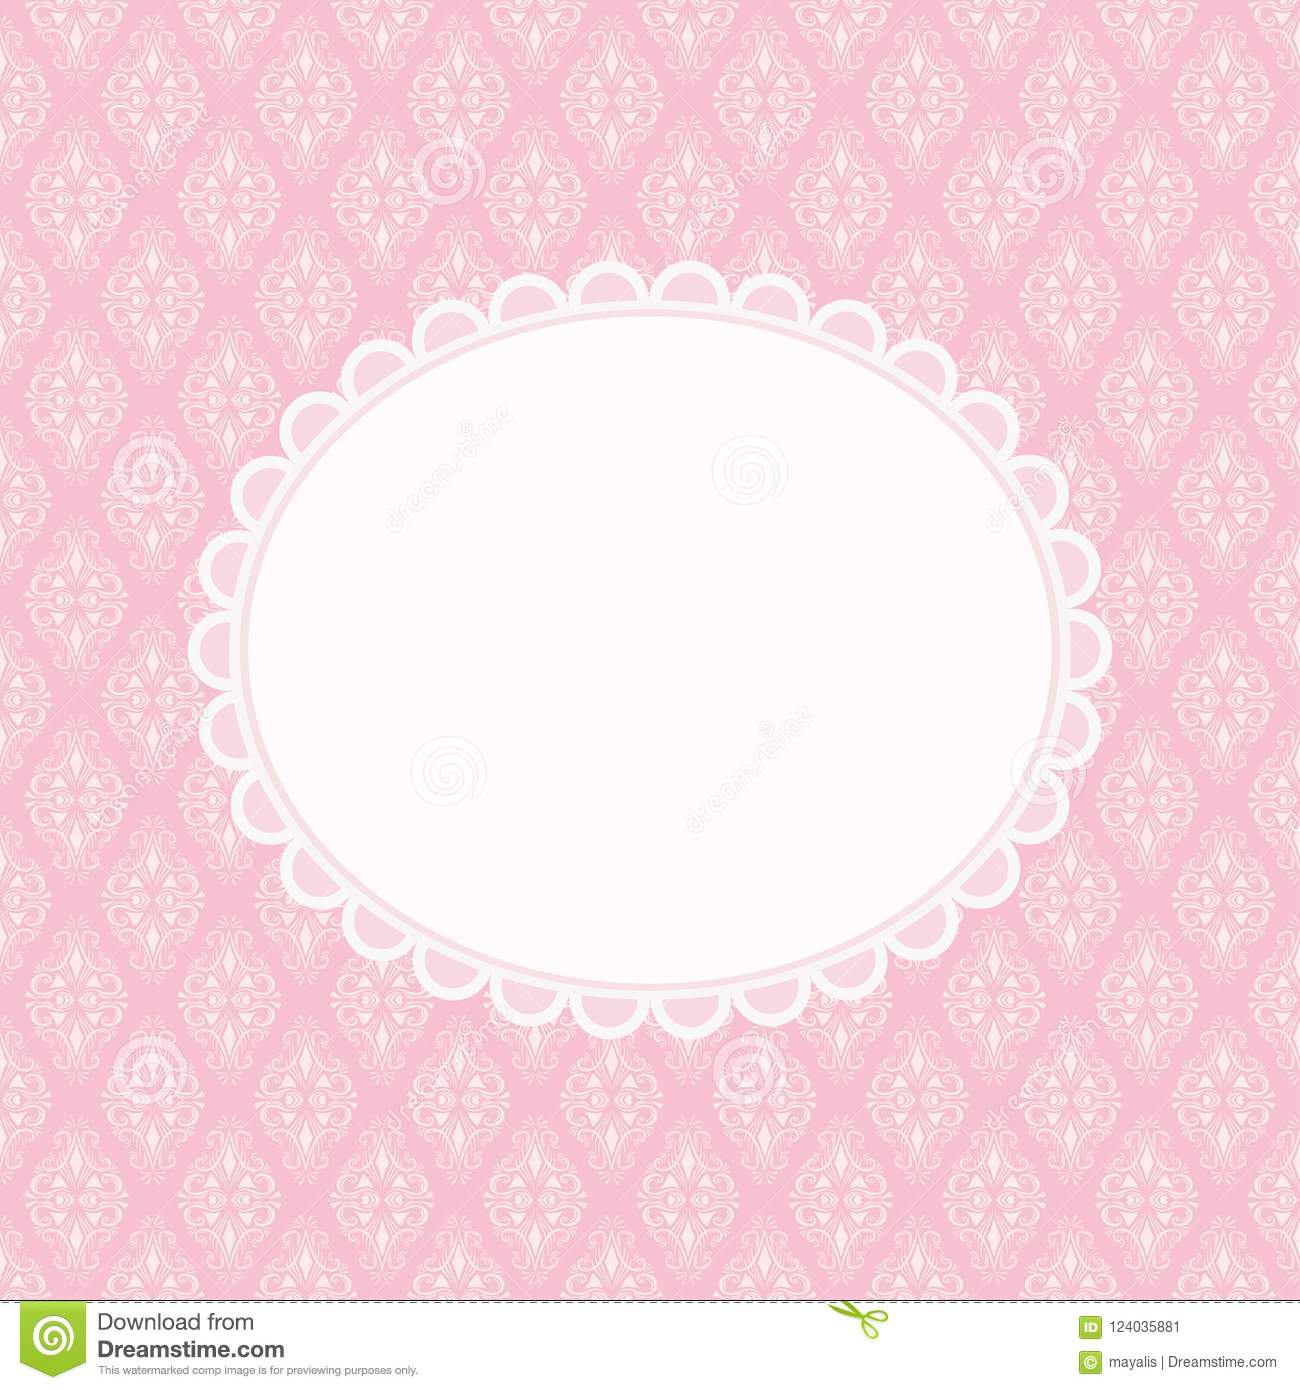 Invitation Card With Blank Space For Text On Pink Damask